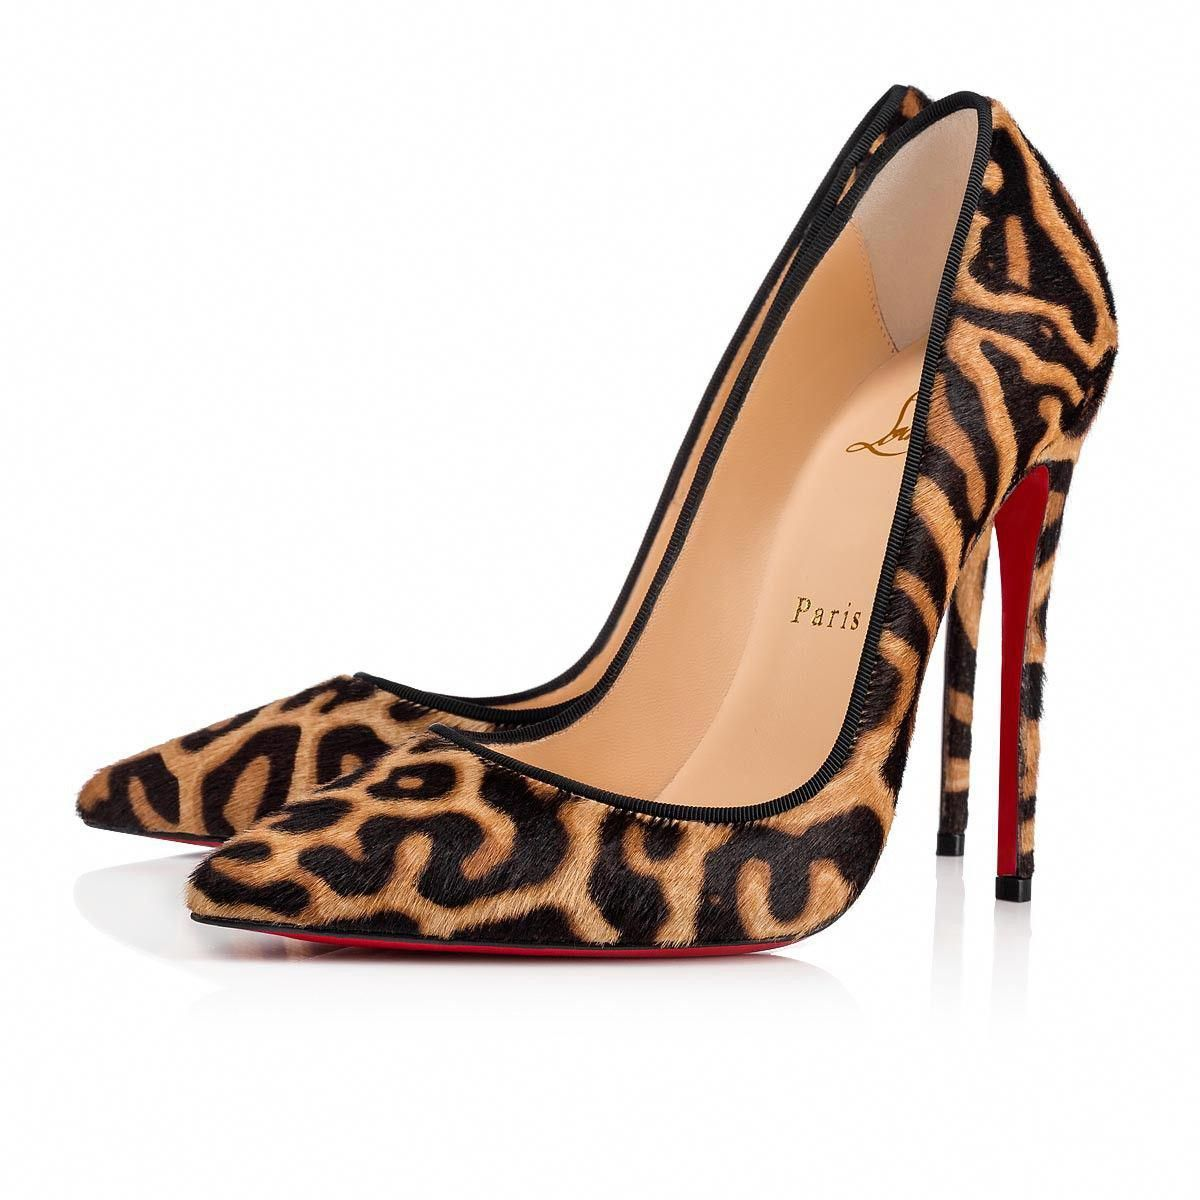 96510baf8dfb Christian Louboutin United States Official Online Boutique - So Kate 120  Brown Black Printed Pony available online. Discover more Women Shoes by  Christian ...